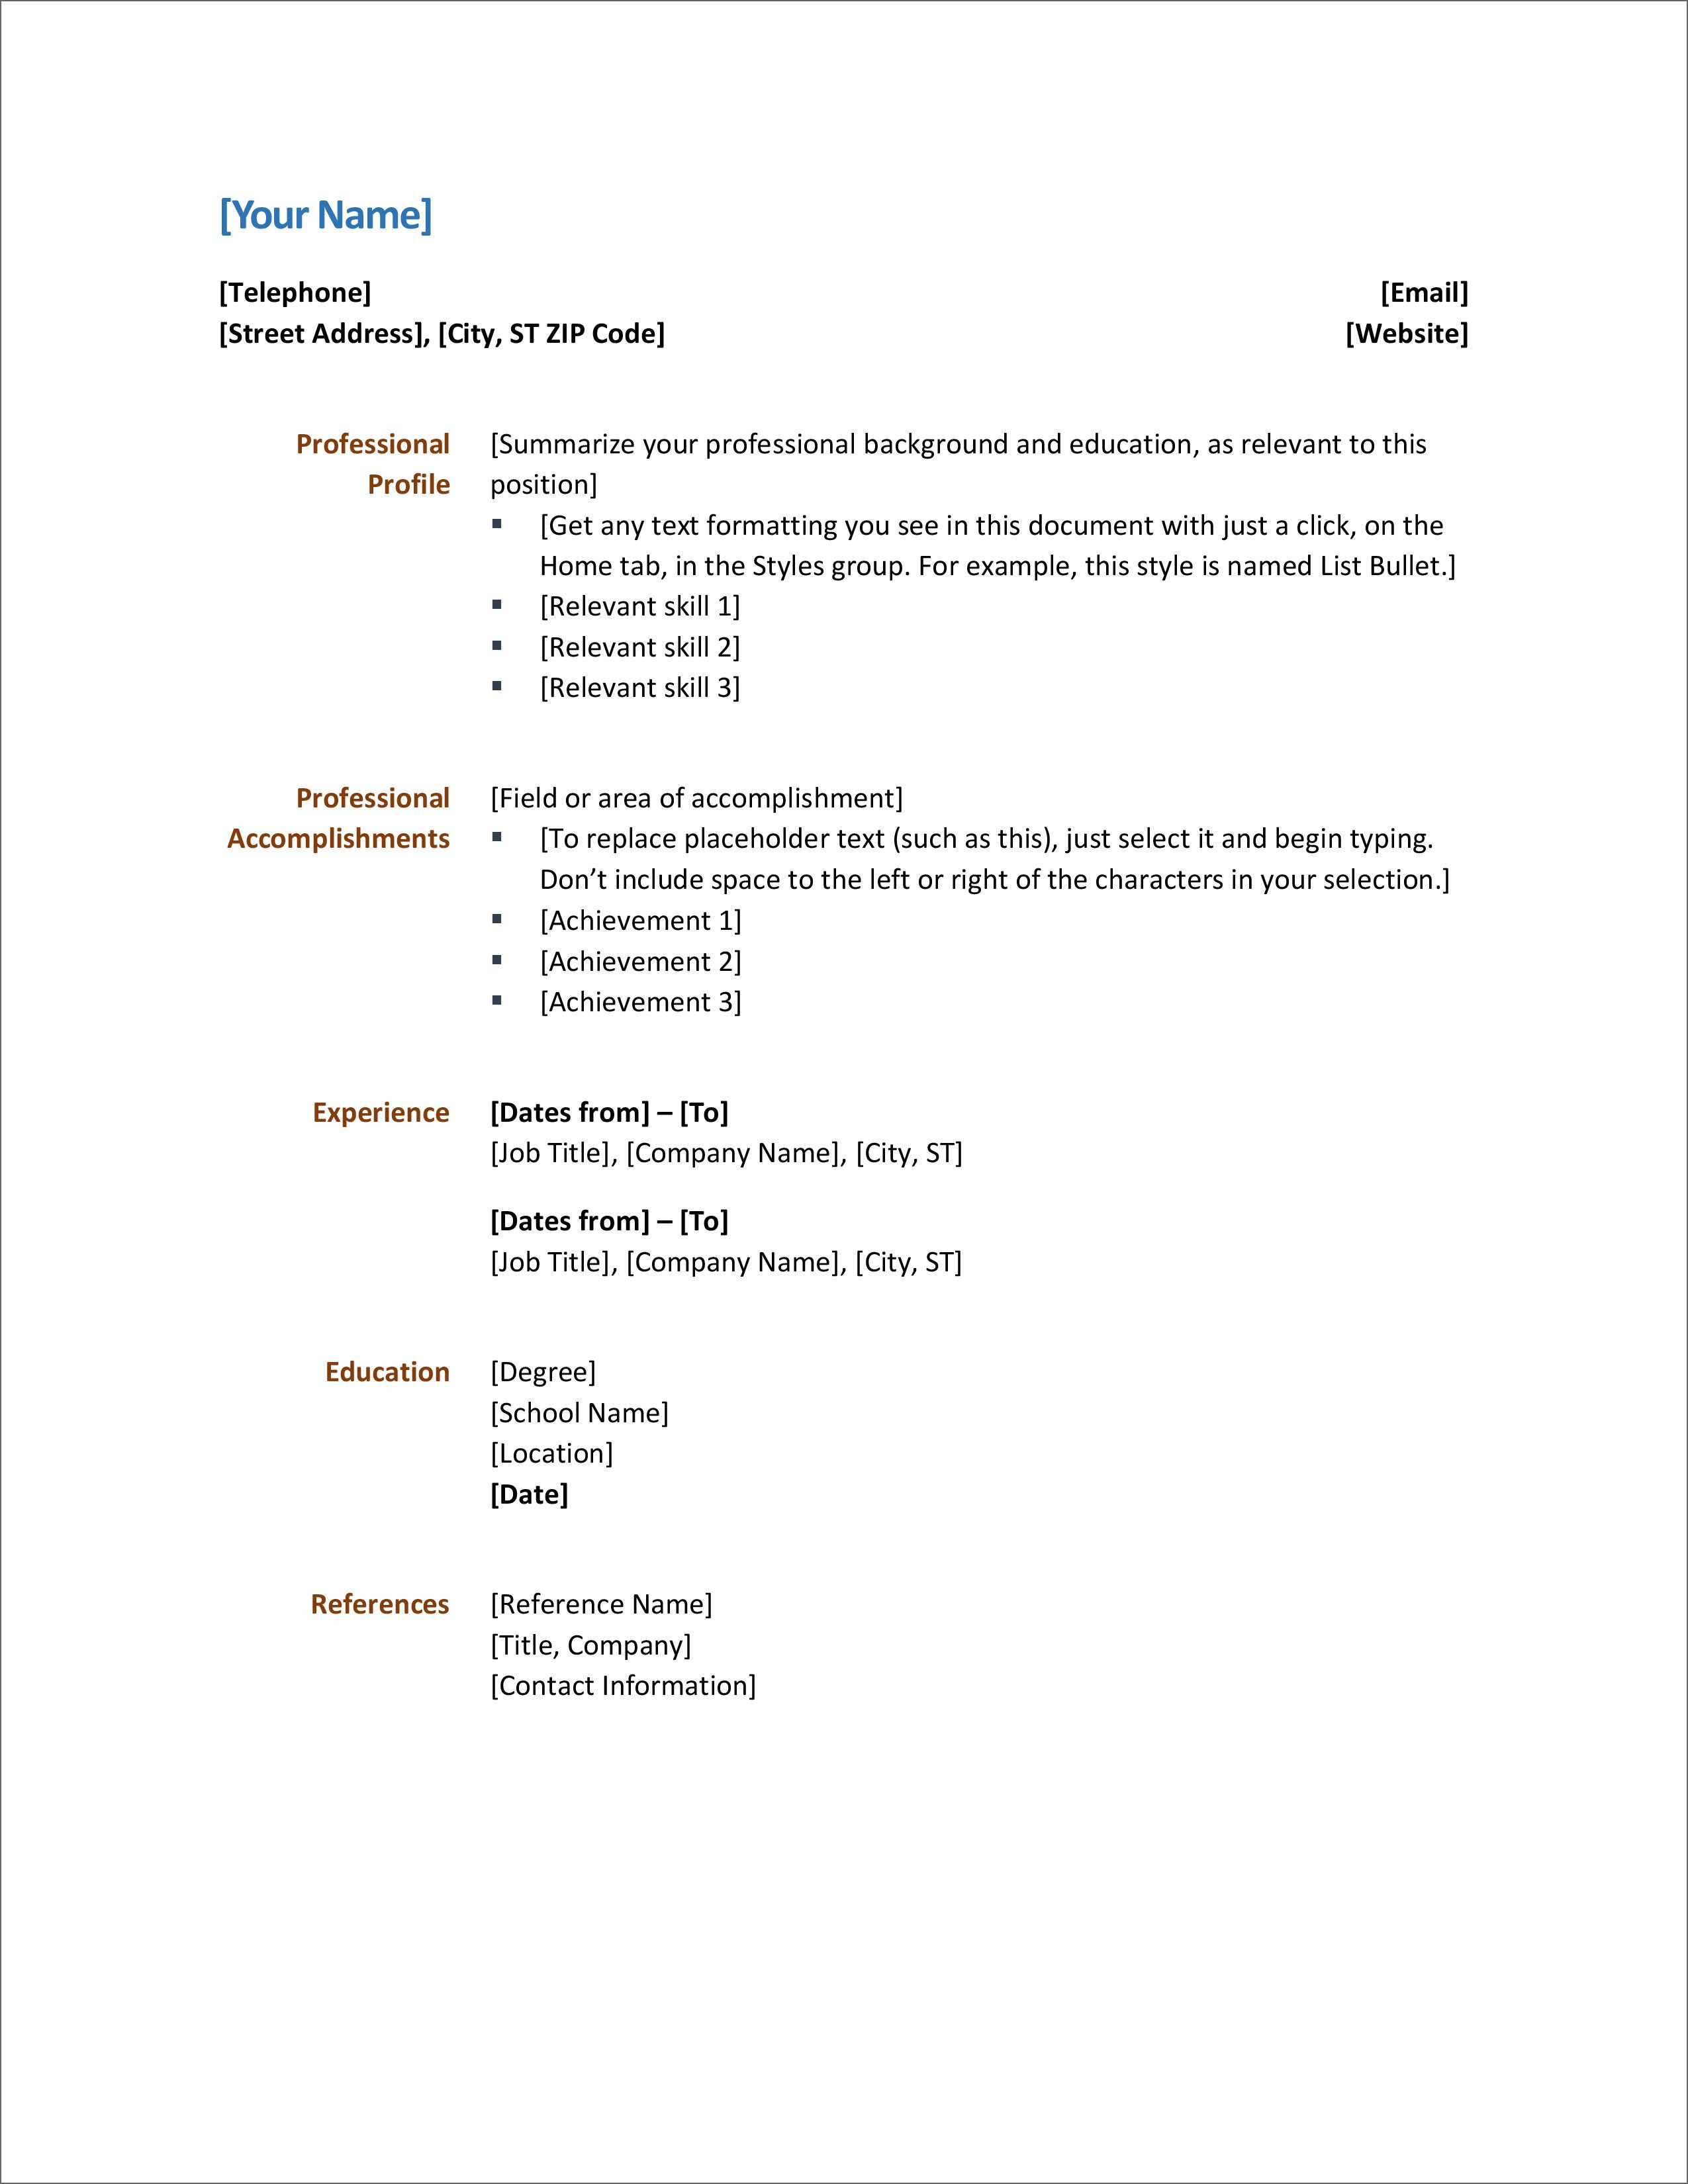 007 Phenomenal Resume Template Word 2007 Free Concept  Microsoft Office For MFull